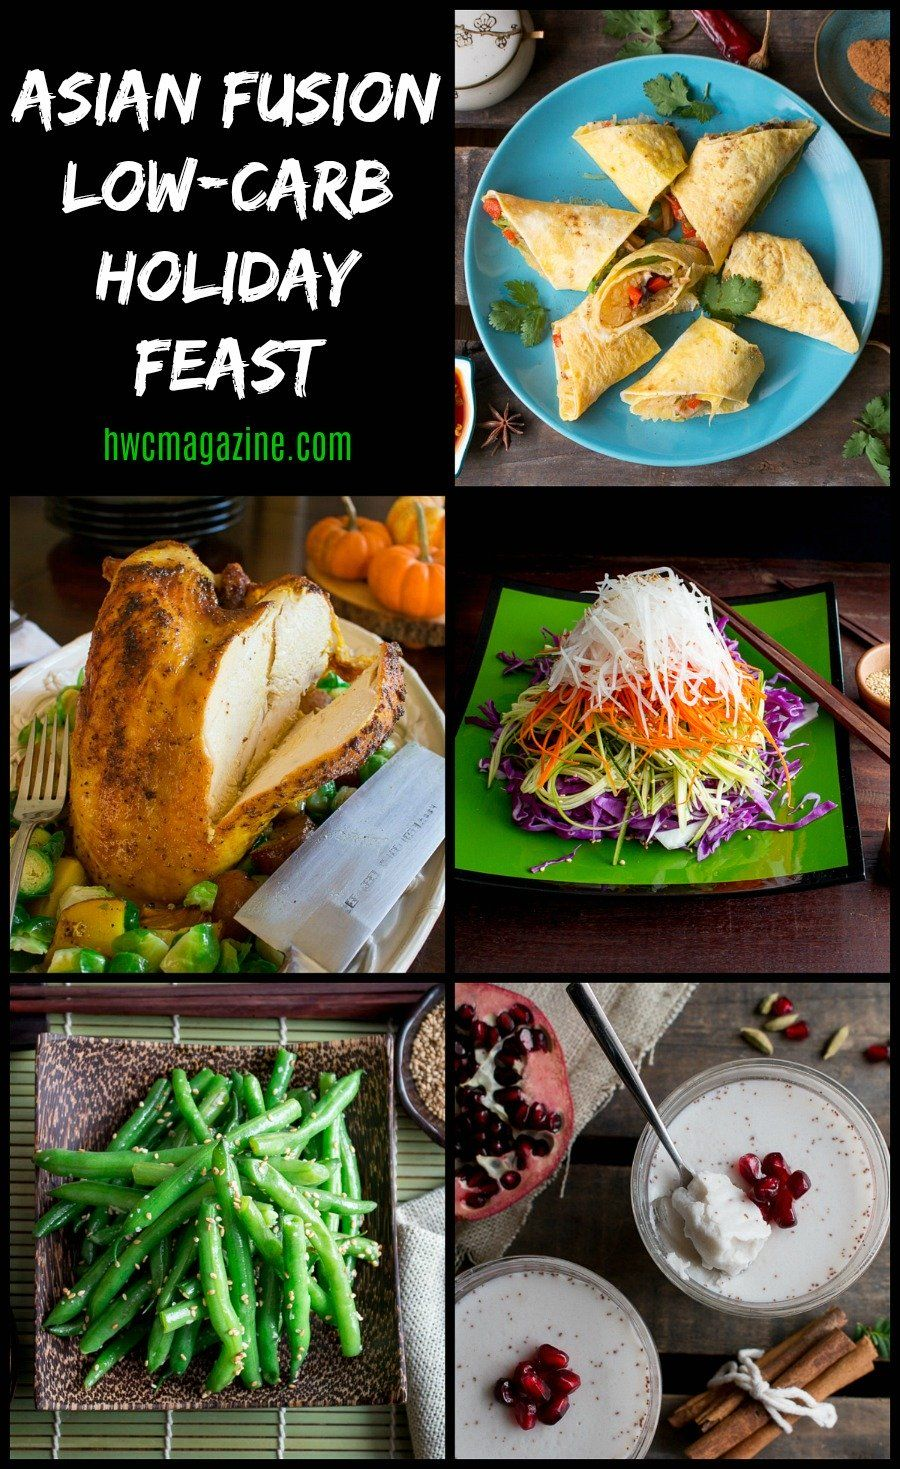 Asian fusion lowcarb holiday feast recipes low carb